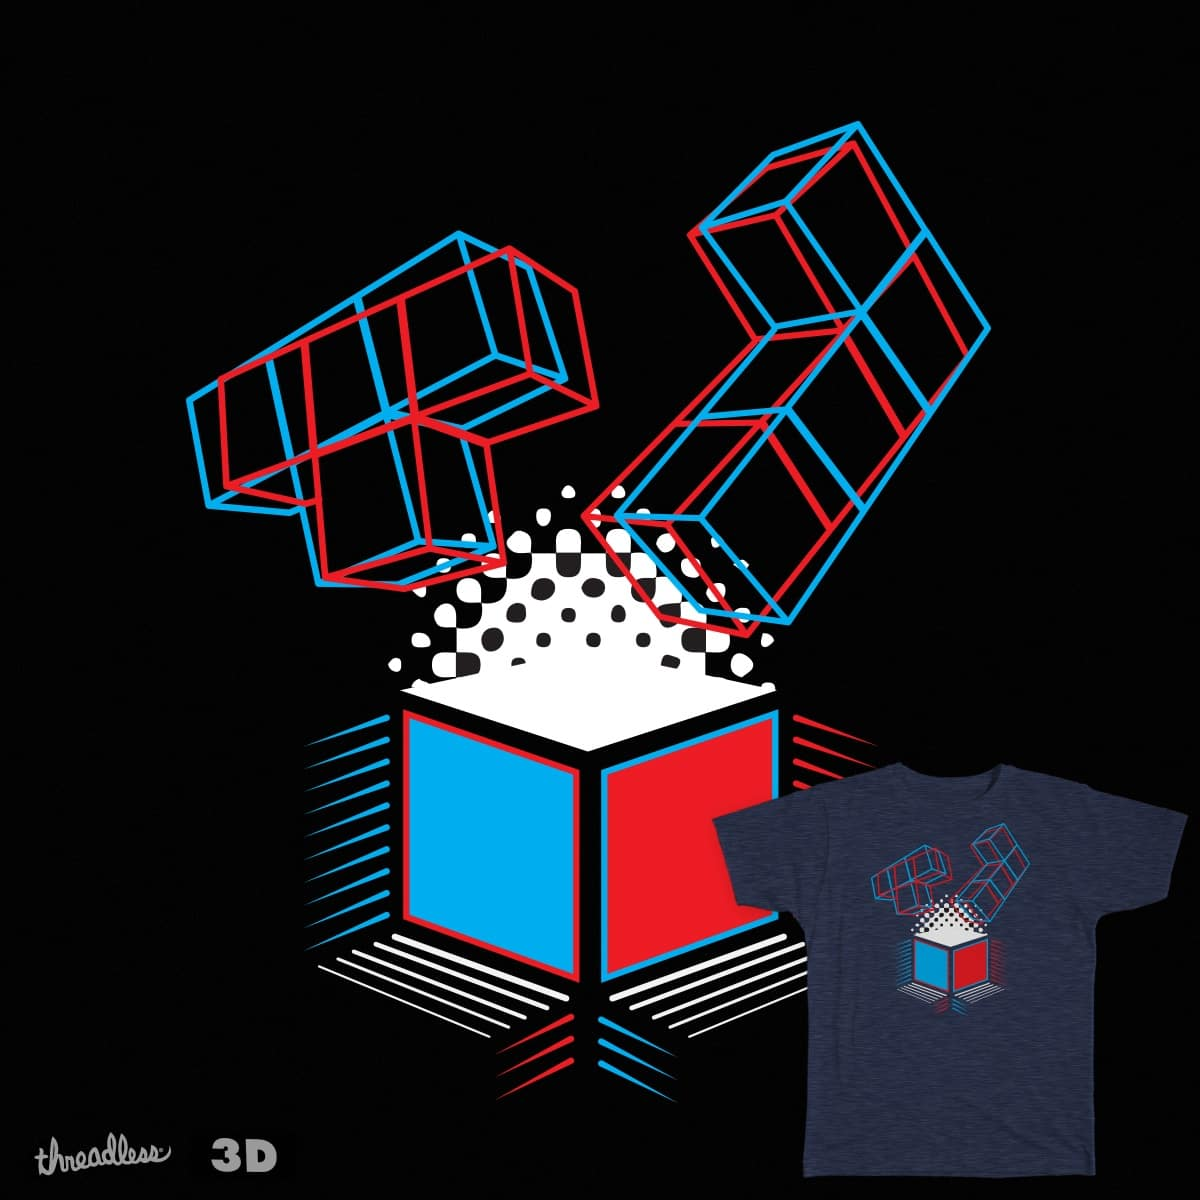 holo-tris by gobseck on Threadless